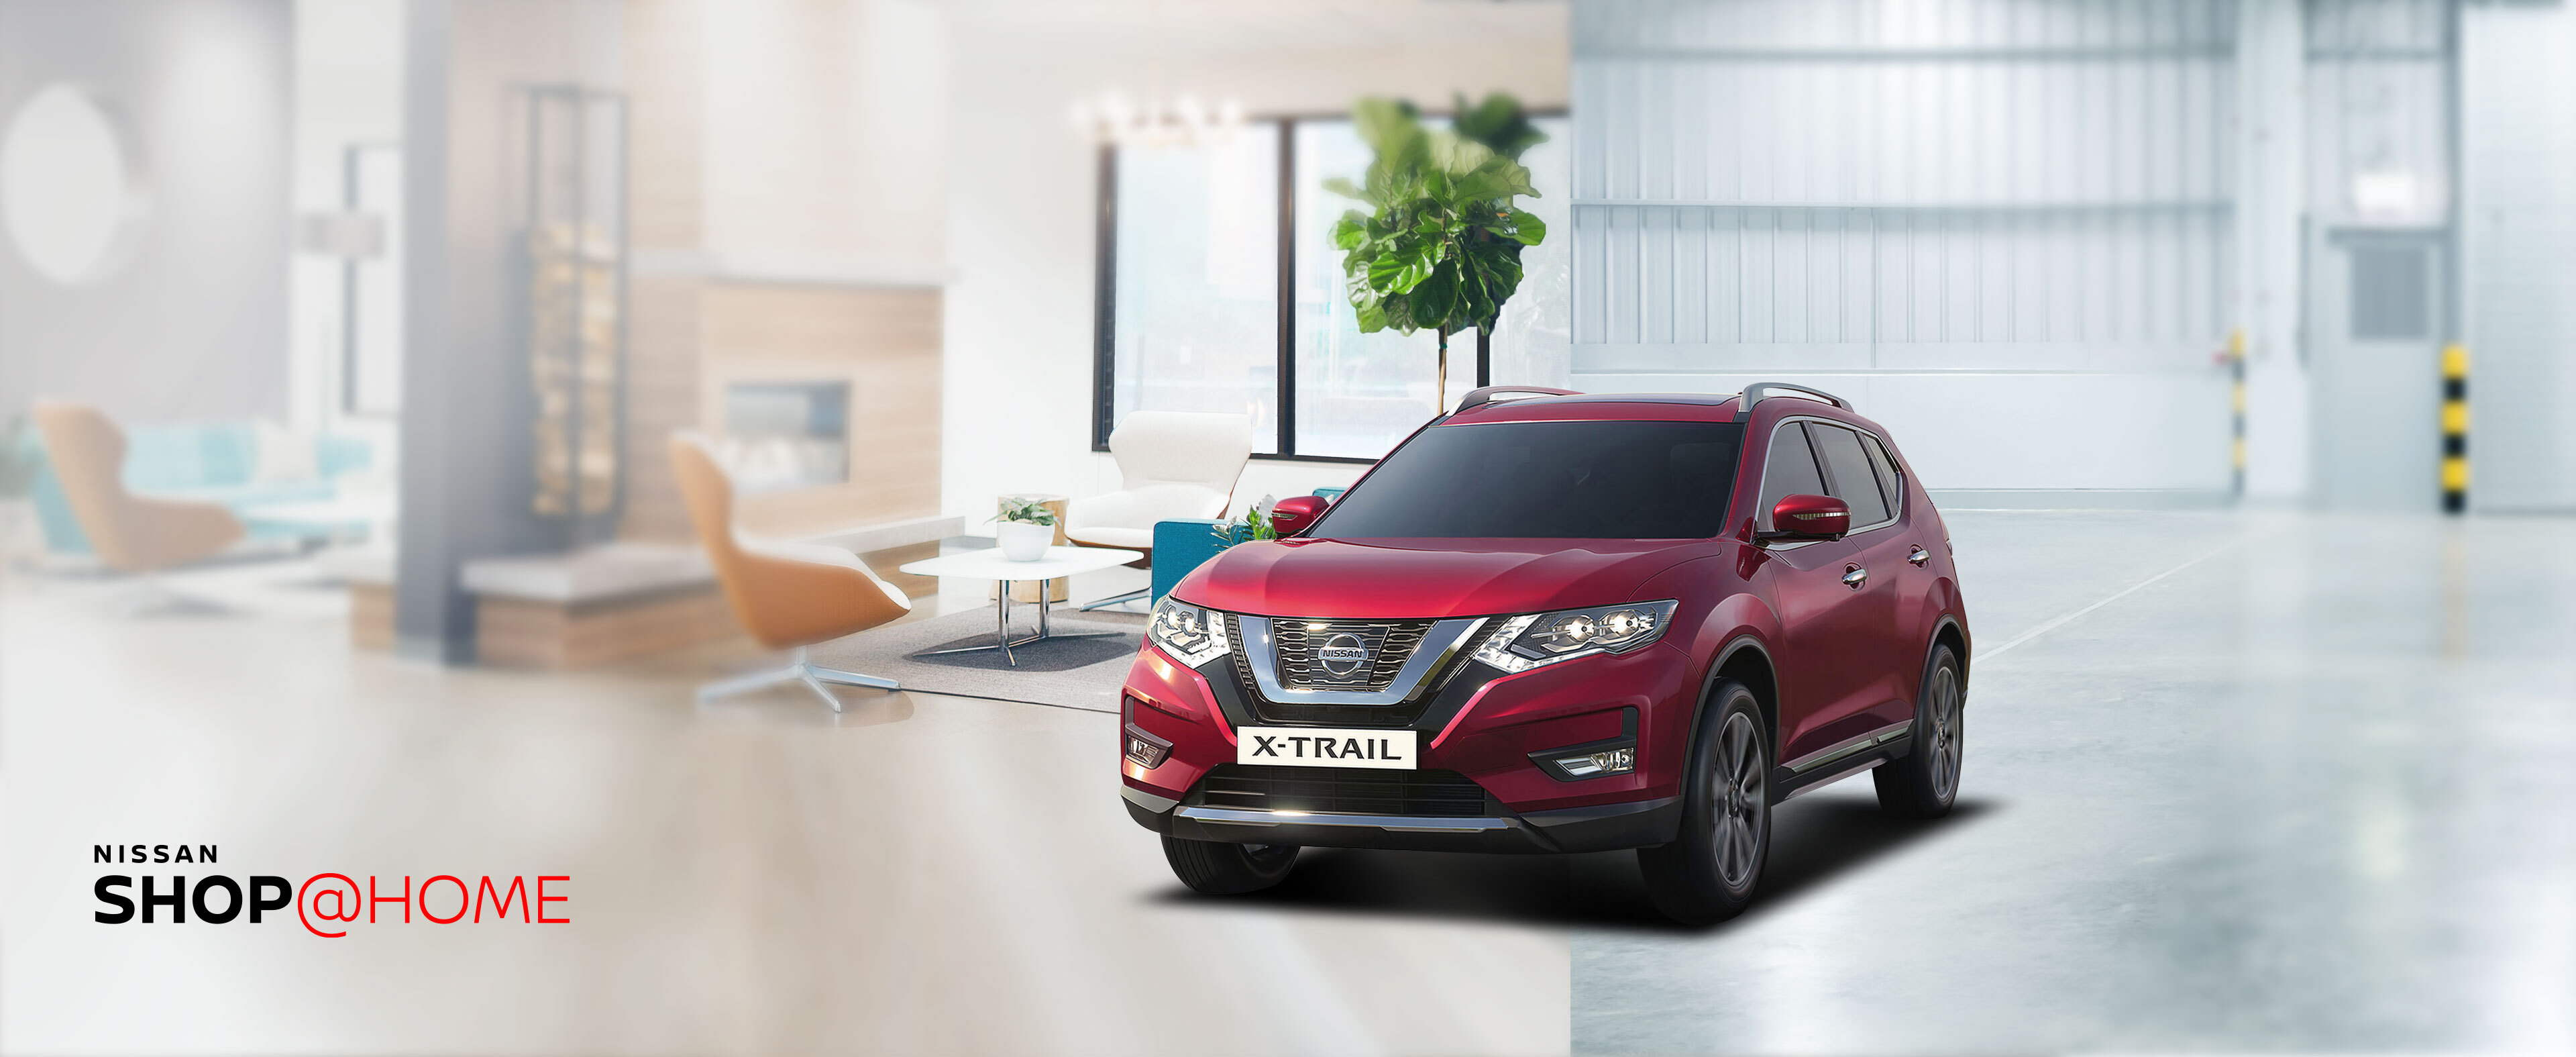 red Nissan X-trail